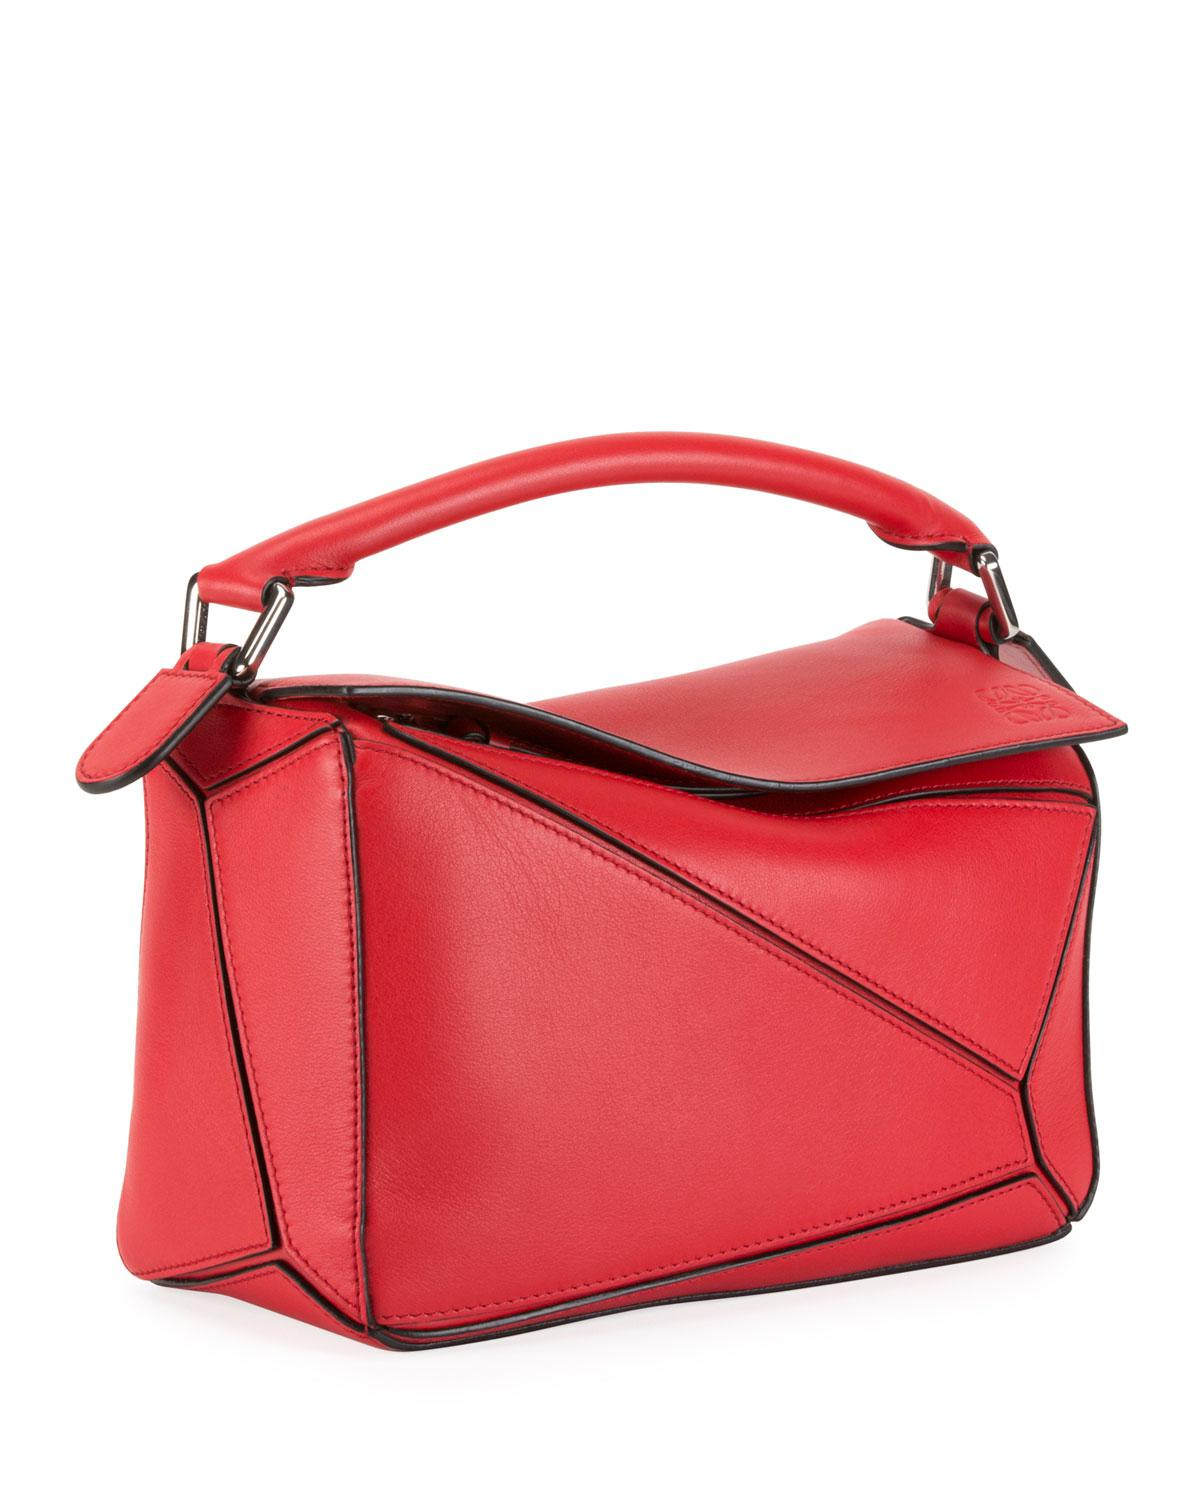 Lyst - Loewe Puzzle Mini Textured-leather Shoulder Bag in Red - Save 22% 185aac365f25e